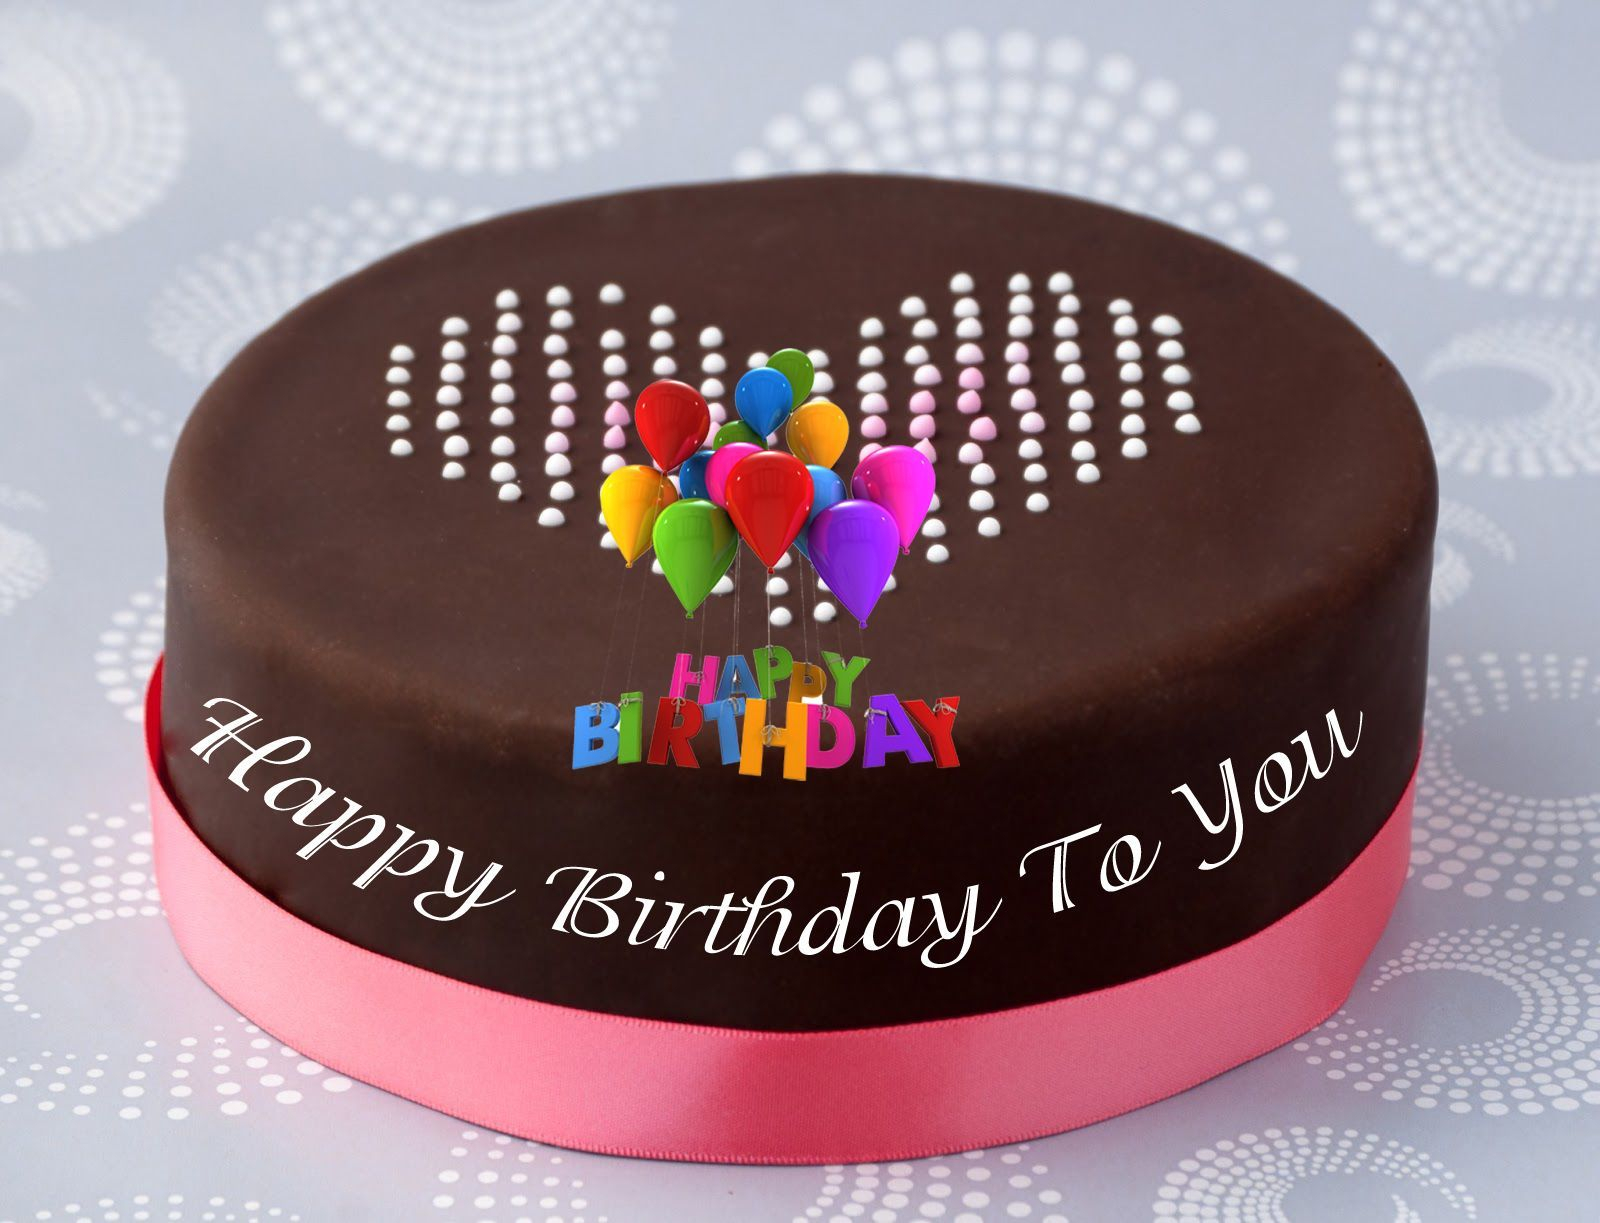 Birthday Cake Picture Free Download Pin Laura Thomas On Happy Birthday Quotes I Like Pinterest